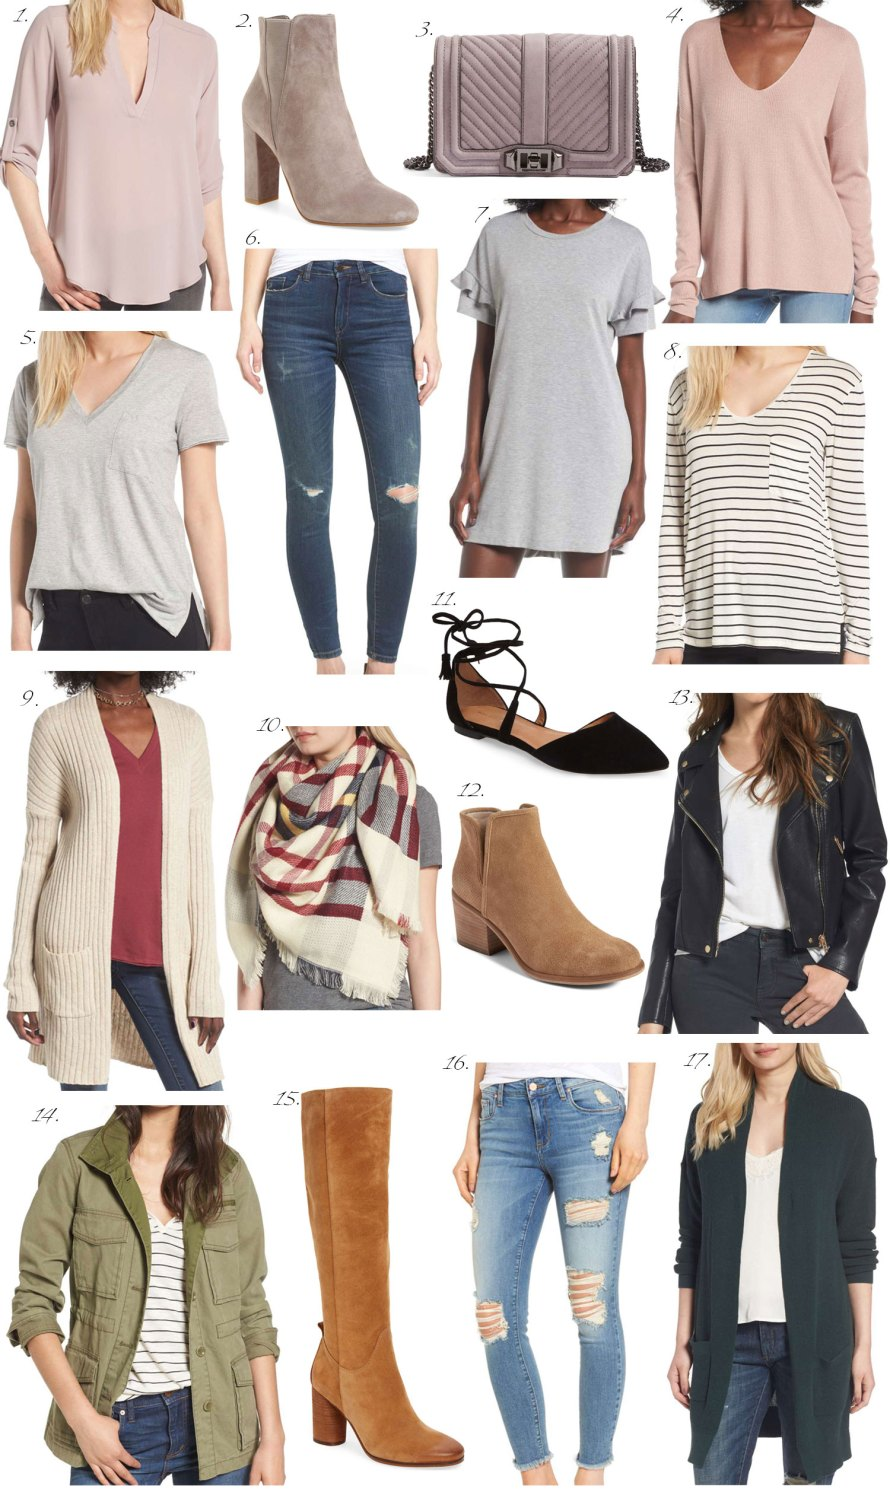 nordstrom anniversary sale 2017 must have items